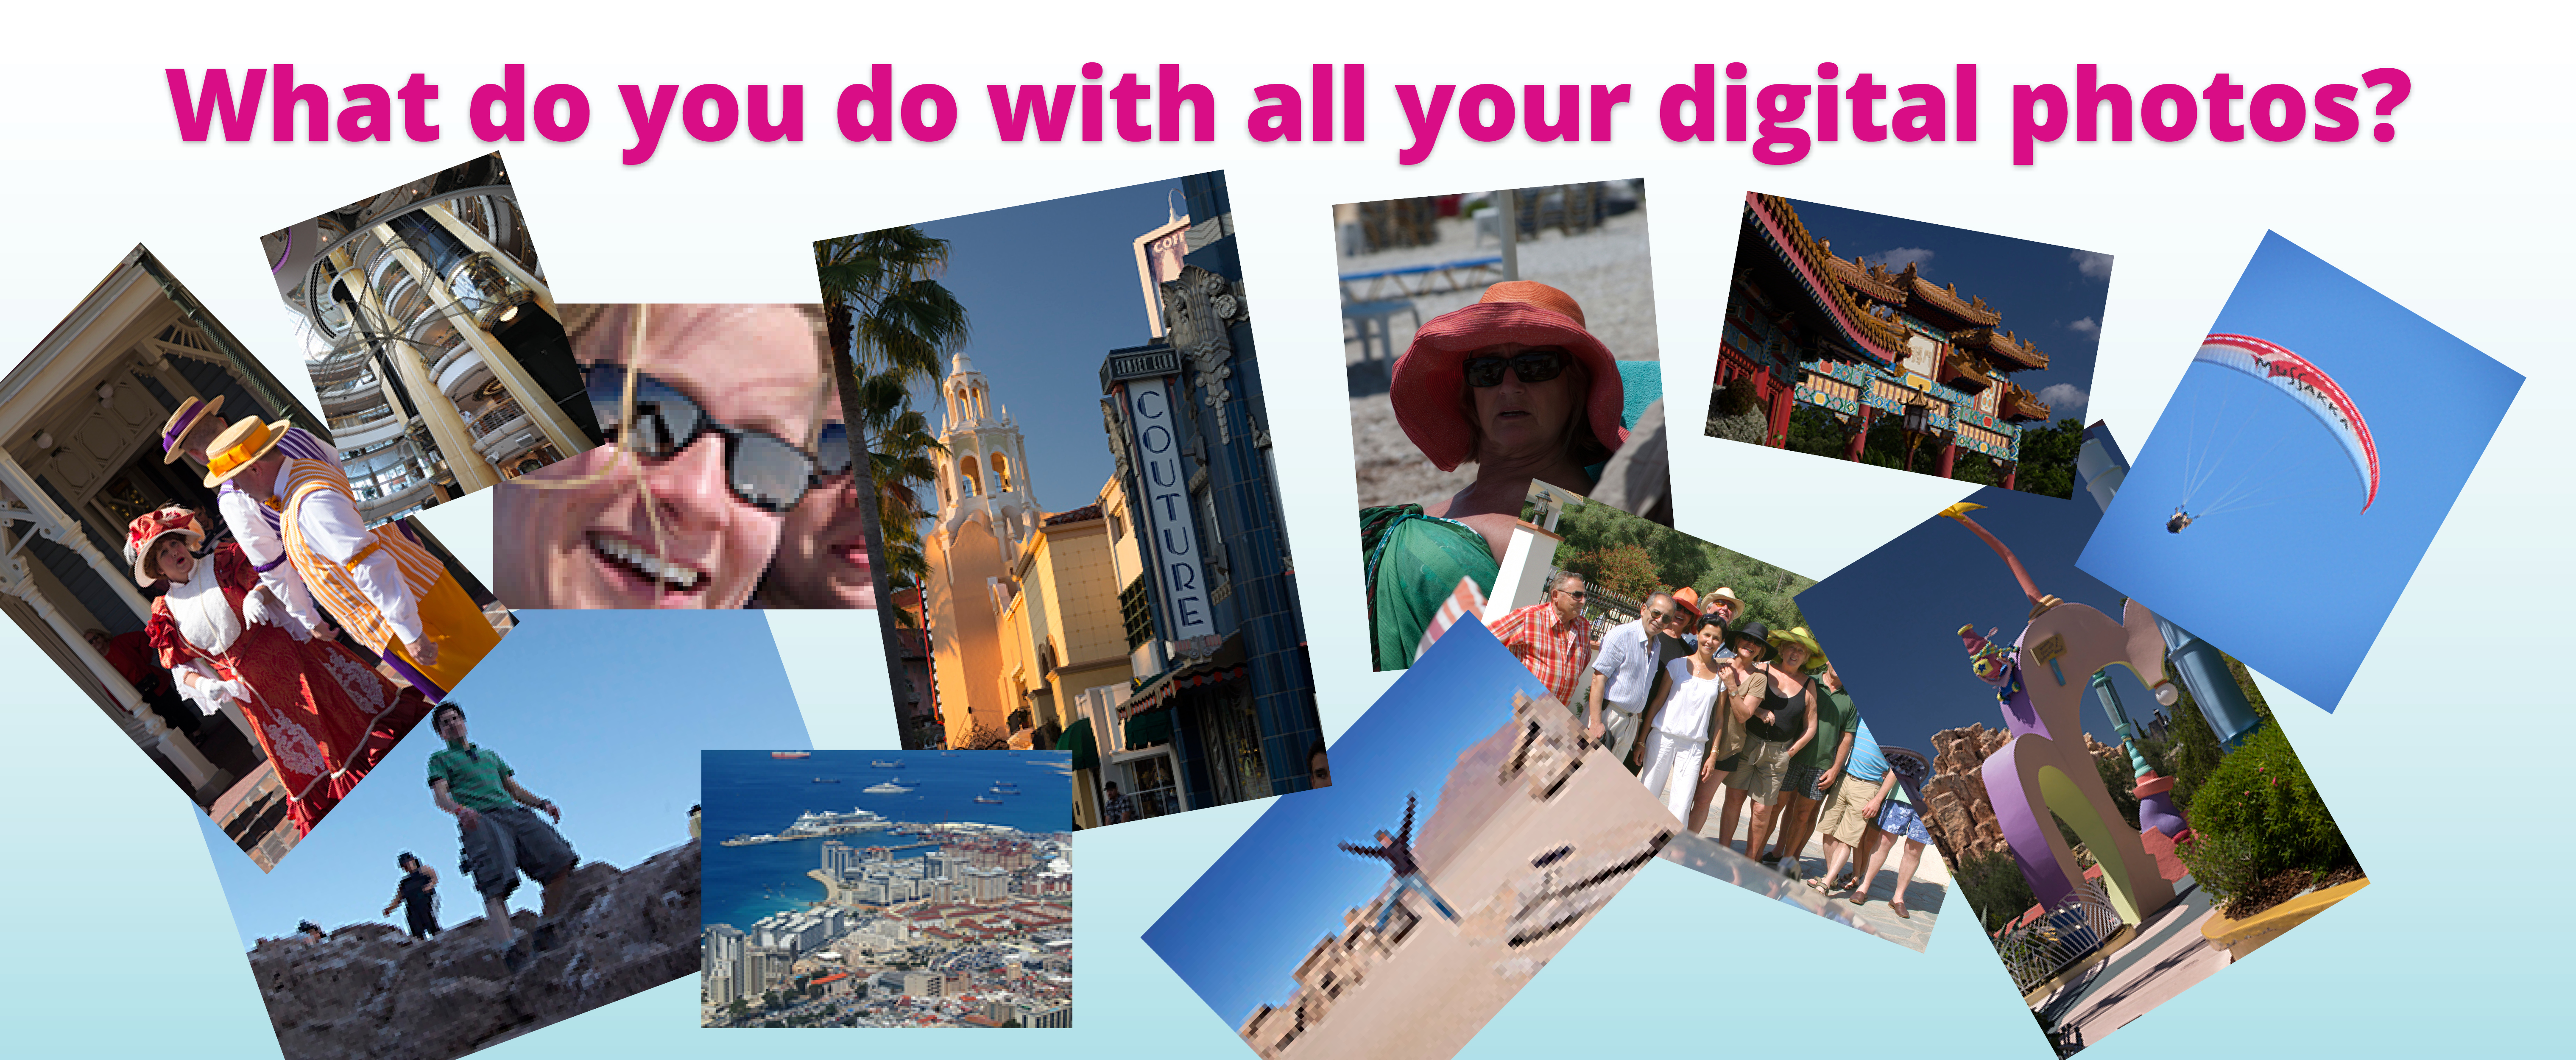 What did you do with all your digital photos?